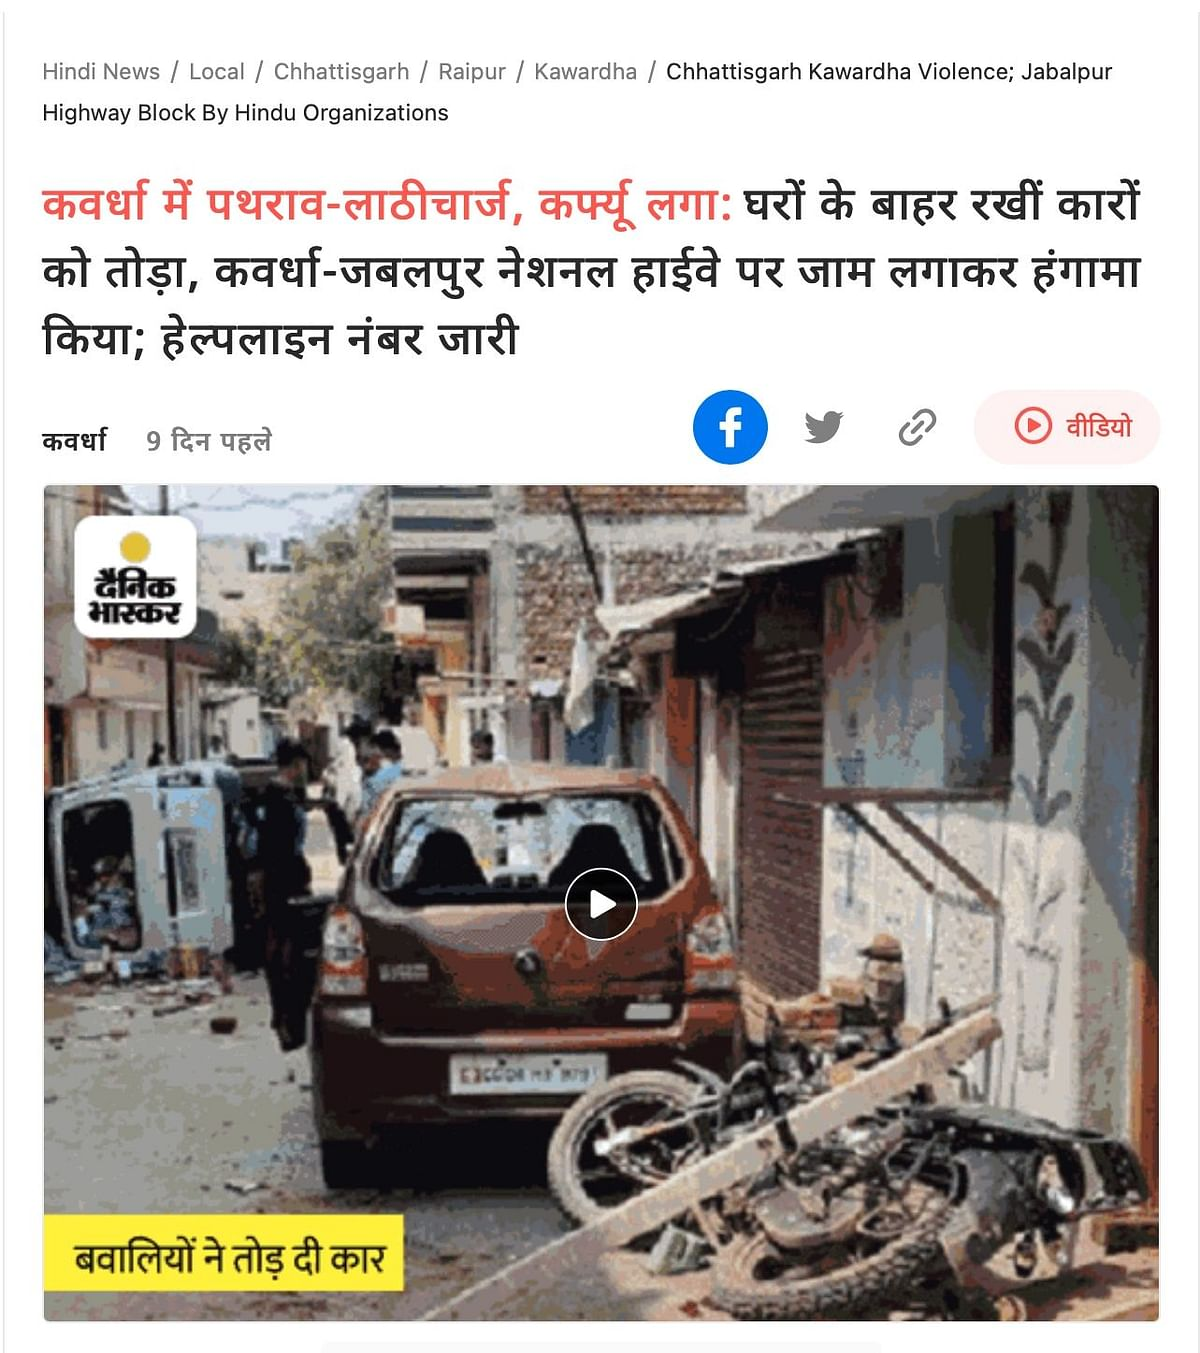 """<div class=""""paragraphs""""><p>The report shows the aftermath of the violence seen in the video.</p></div>"""